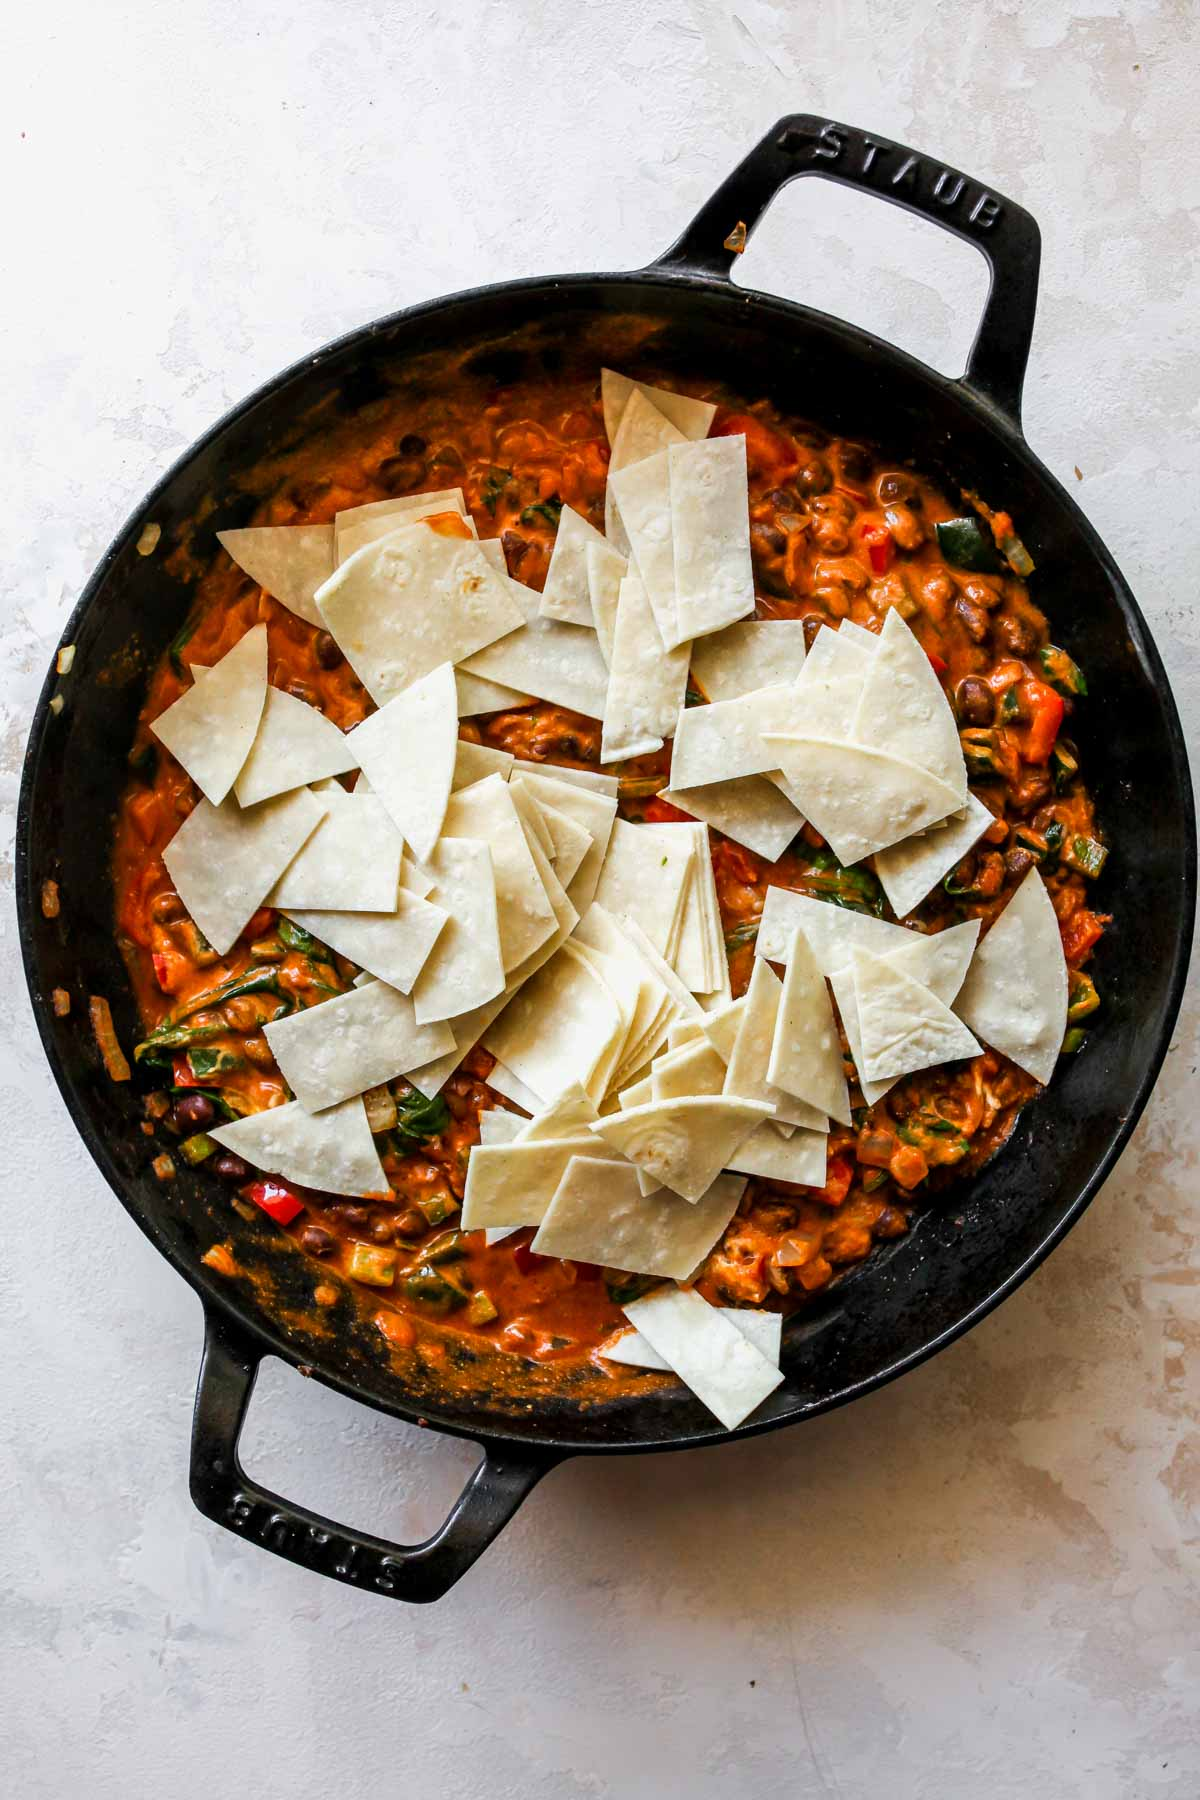 Chopped tortilla strips being stirred in a pan of enchilada sauce